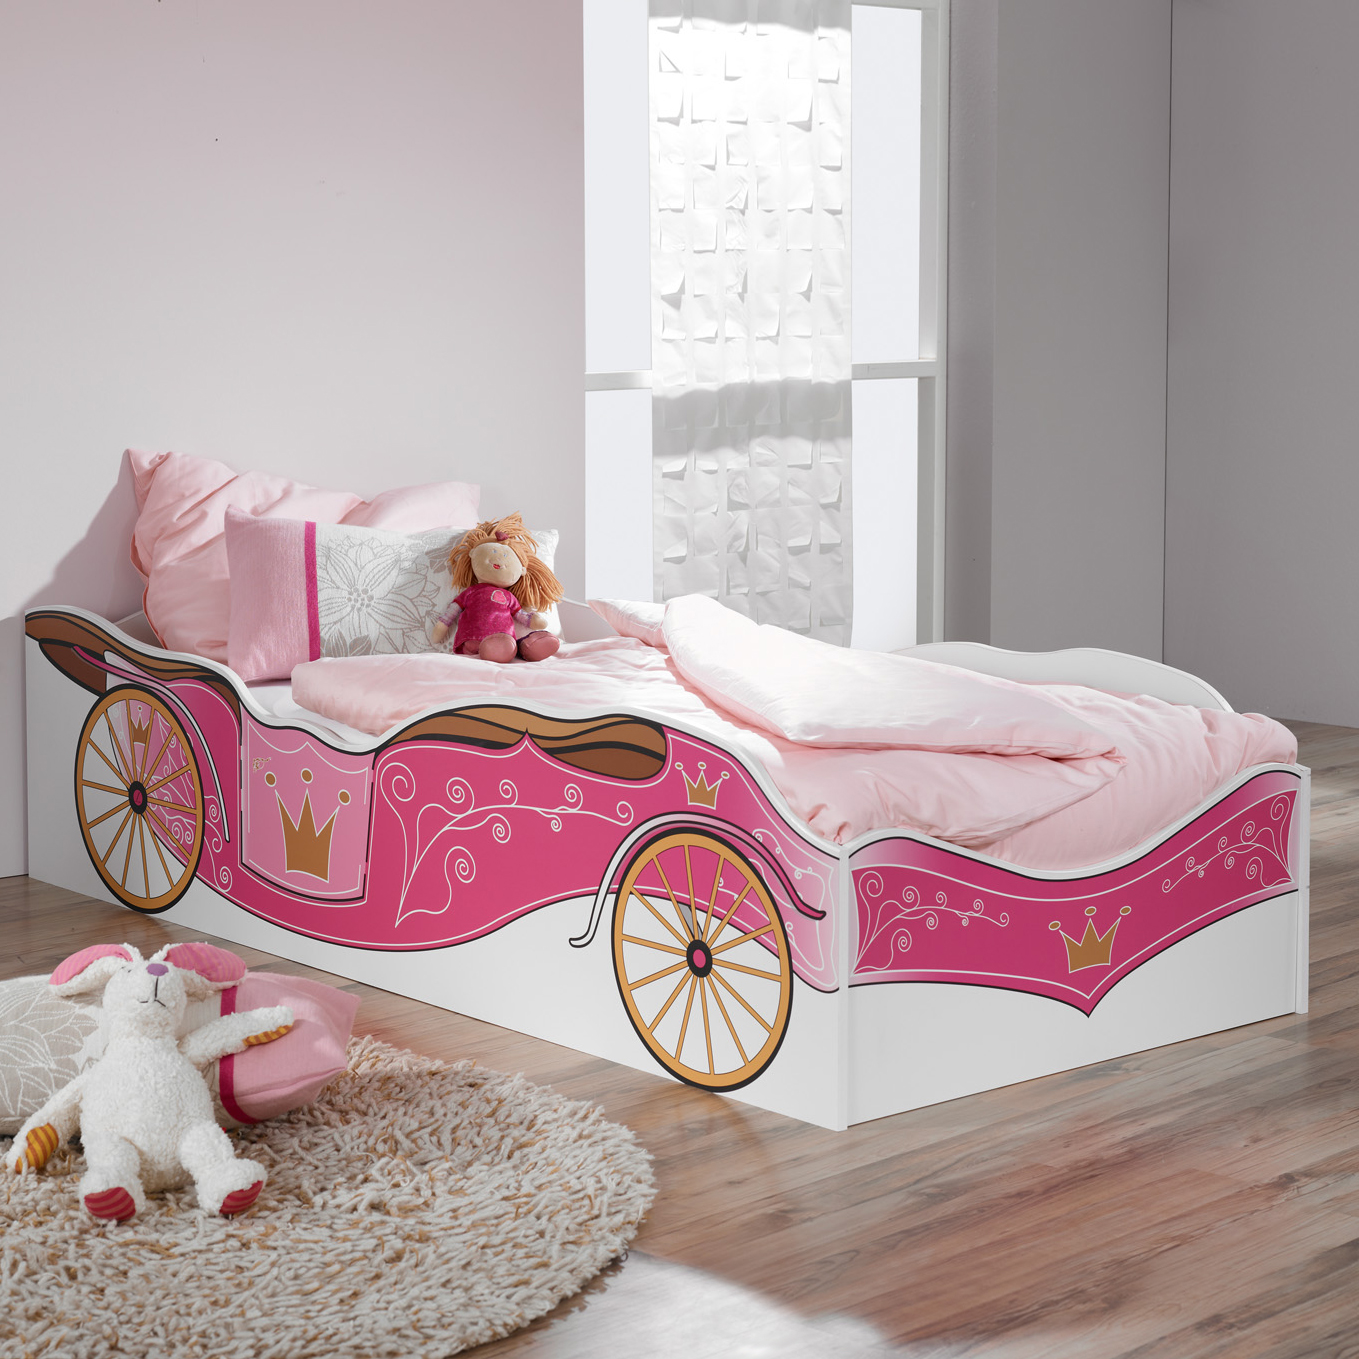 kinderbett prinzessin kutsche rosa jugendbett bett kinderzimmer kinder neu ebay. Black Bedroom Furniture Sets. Home Design Ideas